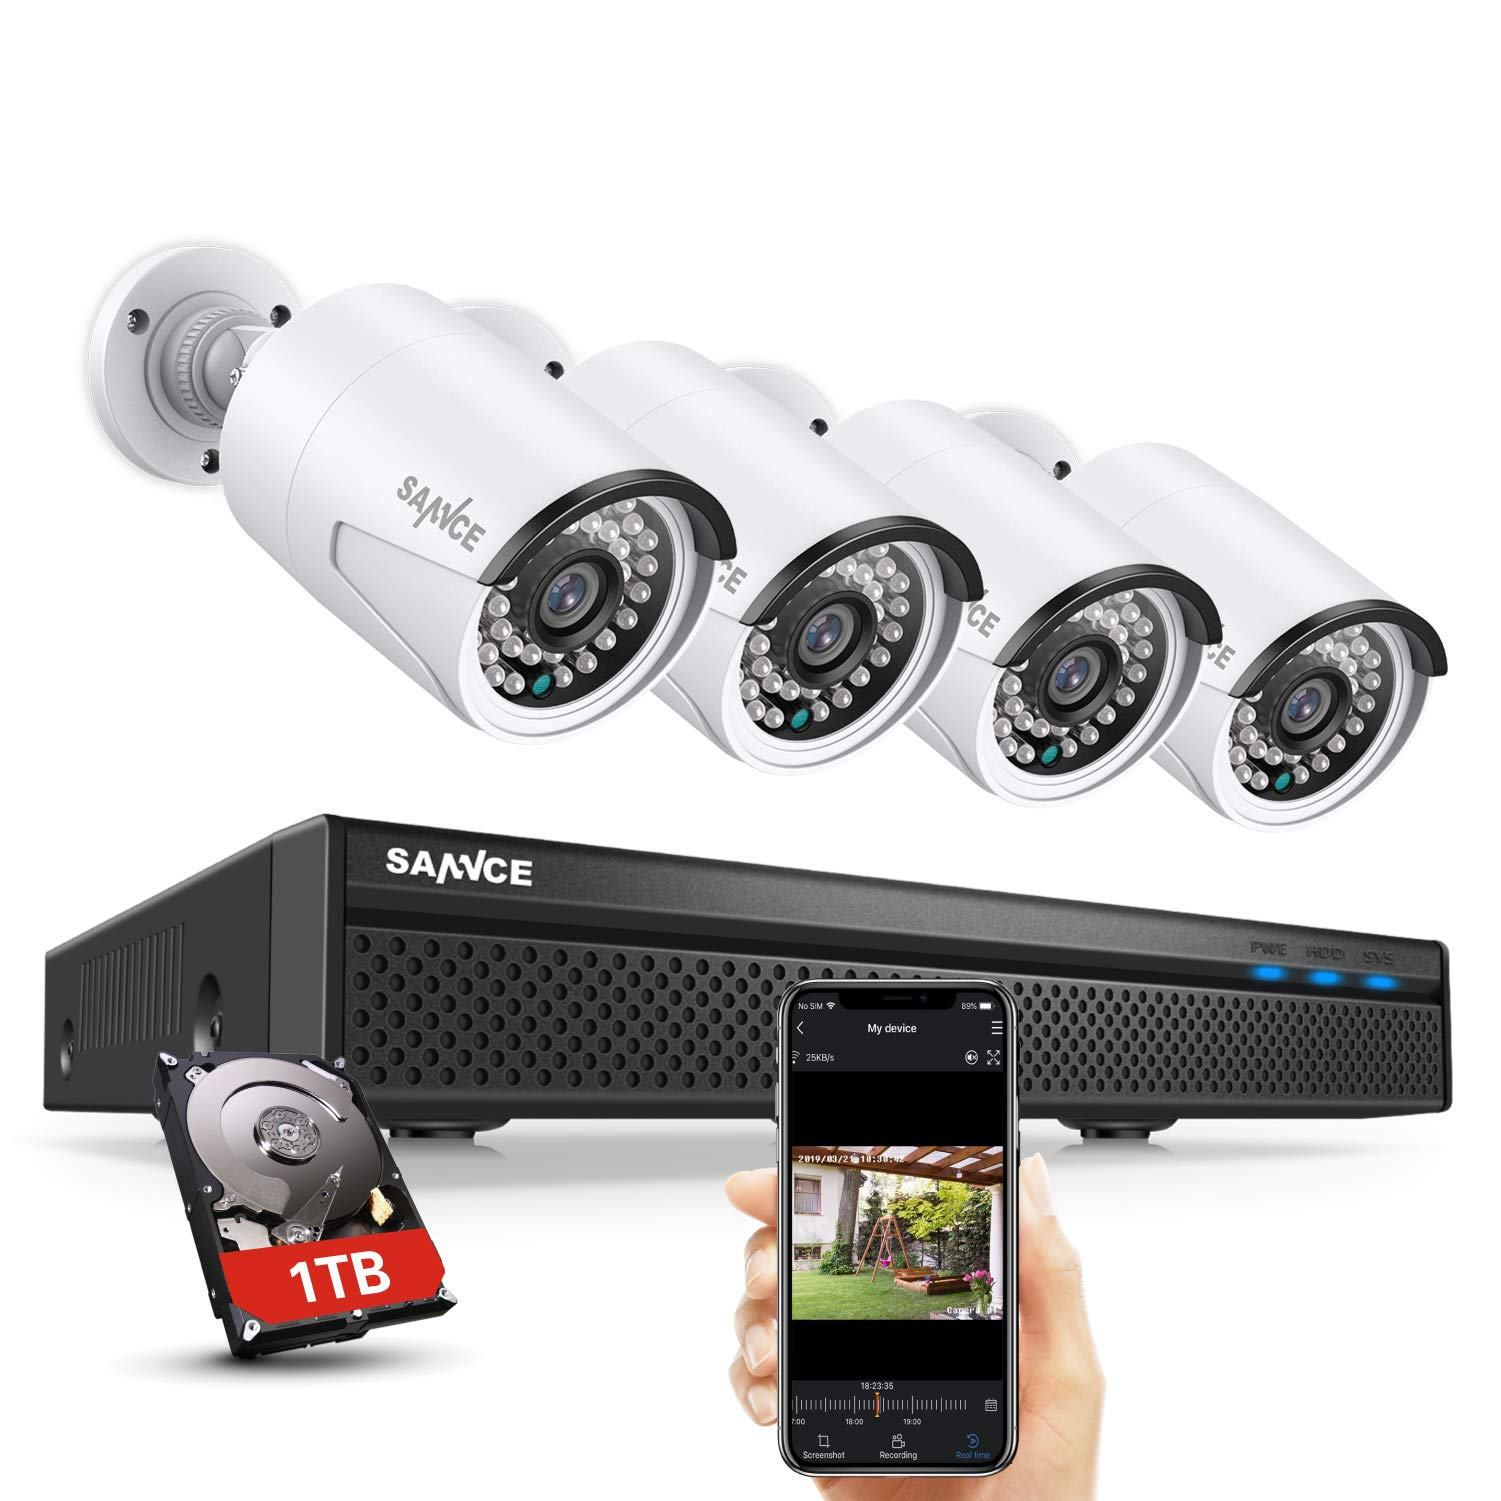 Expandable 5MP 8CH True POE Security Camera System 4x2MP Surveillance Indoor Outdoor Cameras,Built-in Microphone,100FT Night Vision for 7/24 Recording,H.264+ to Save Storage,1 TB Hard Drive Included by SANNCE